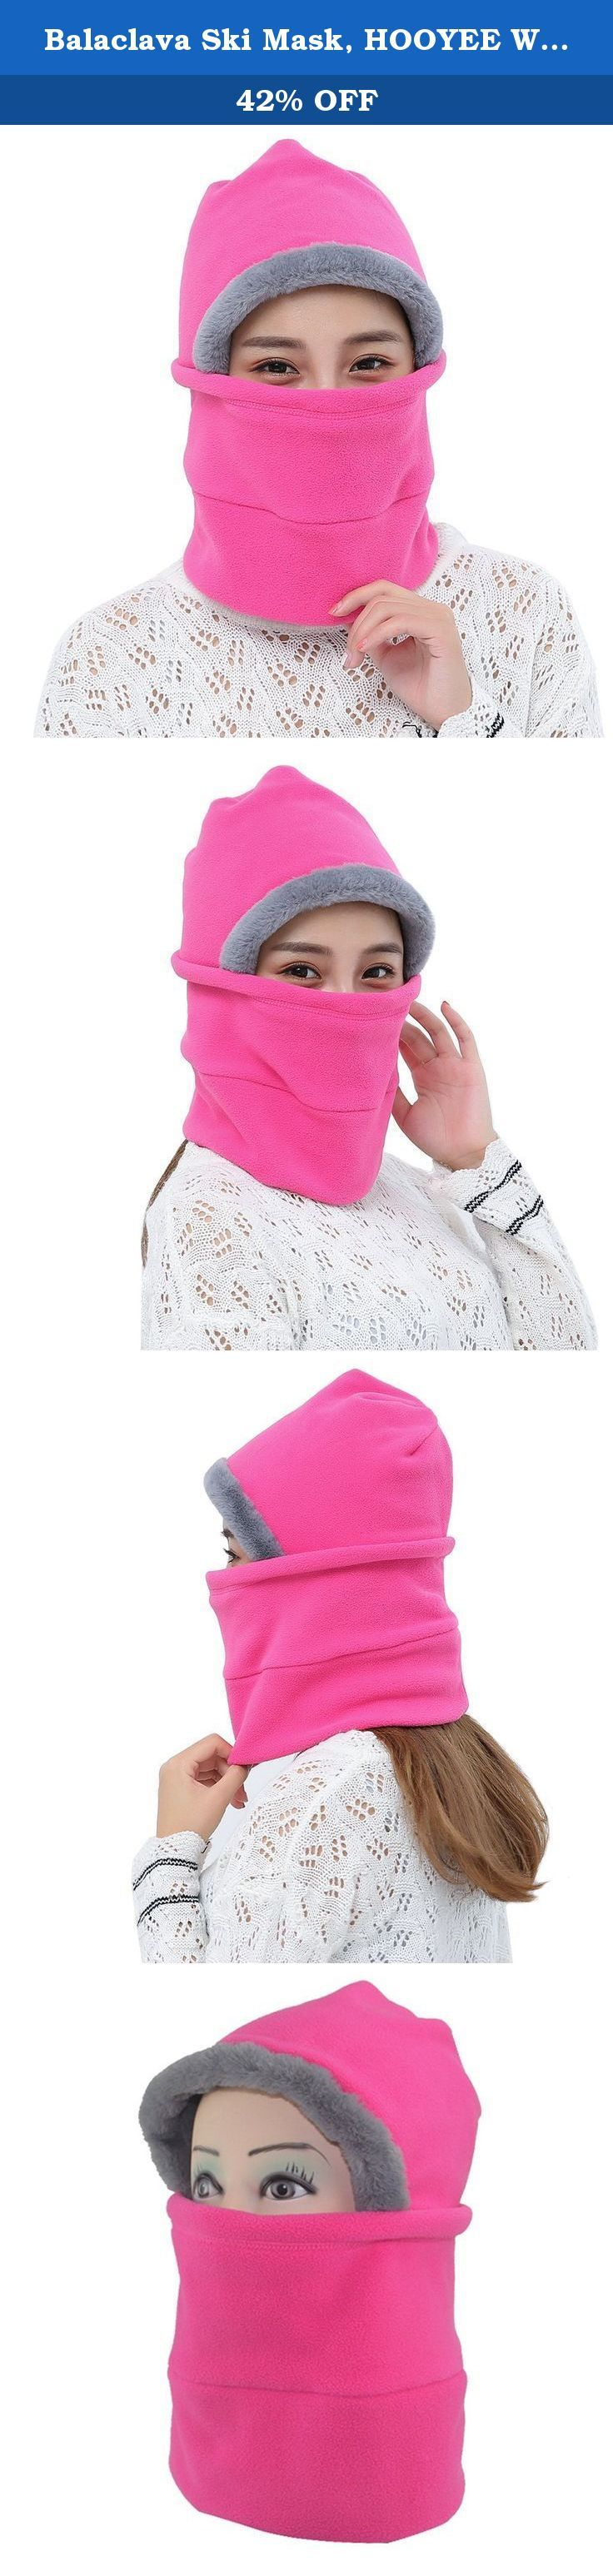 Balaclava Ski Mask, HOOYEE Winter Rabbit Hair Cs Mask Face Head Windproof Mask Outdoor Motorcycle and Cycling Hats for Men and Women (Pink). Winter comes cold, have you prepared for? Dry cheeks, red nose and ears, cold neck, our balaclava ski mask will protect you from. It is also so good gift for you and your family members, or your friends. Why You'll Love Your Versatile Balaclava : Gives cold, wind and sun protection while skiing, motorcycling, running, cycling, trekking, fishing…